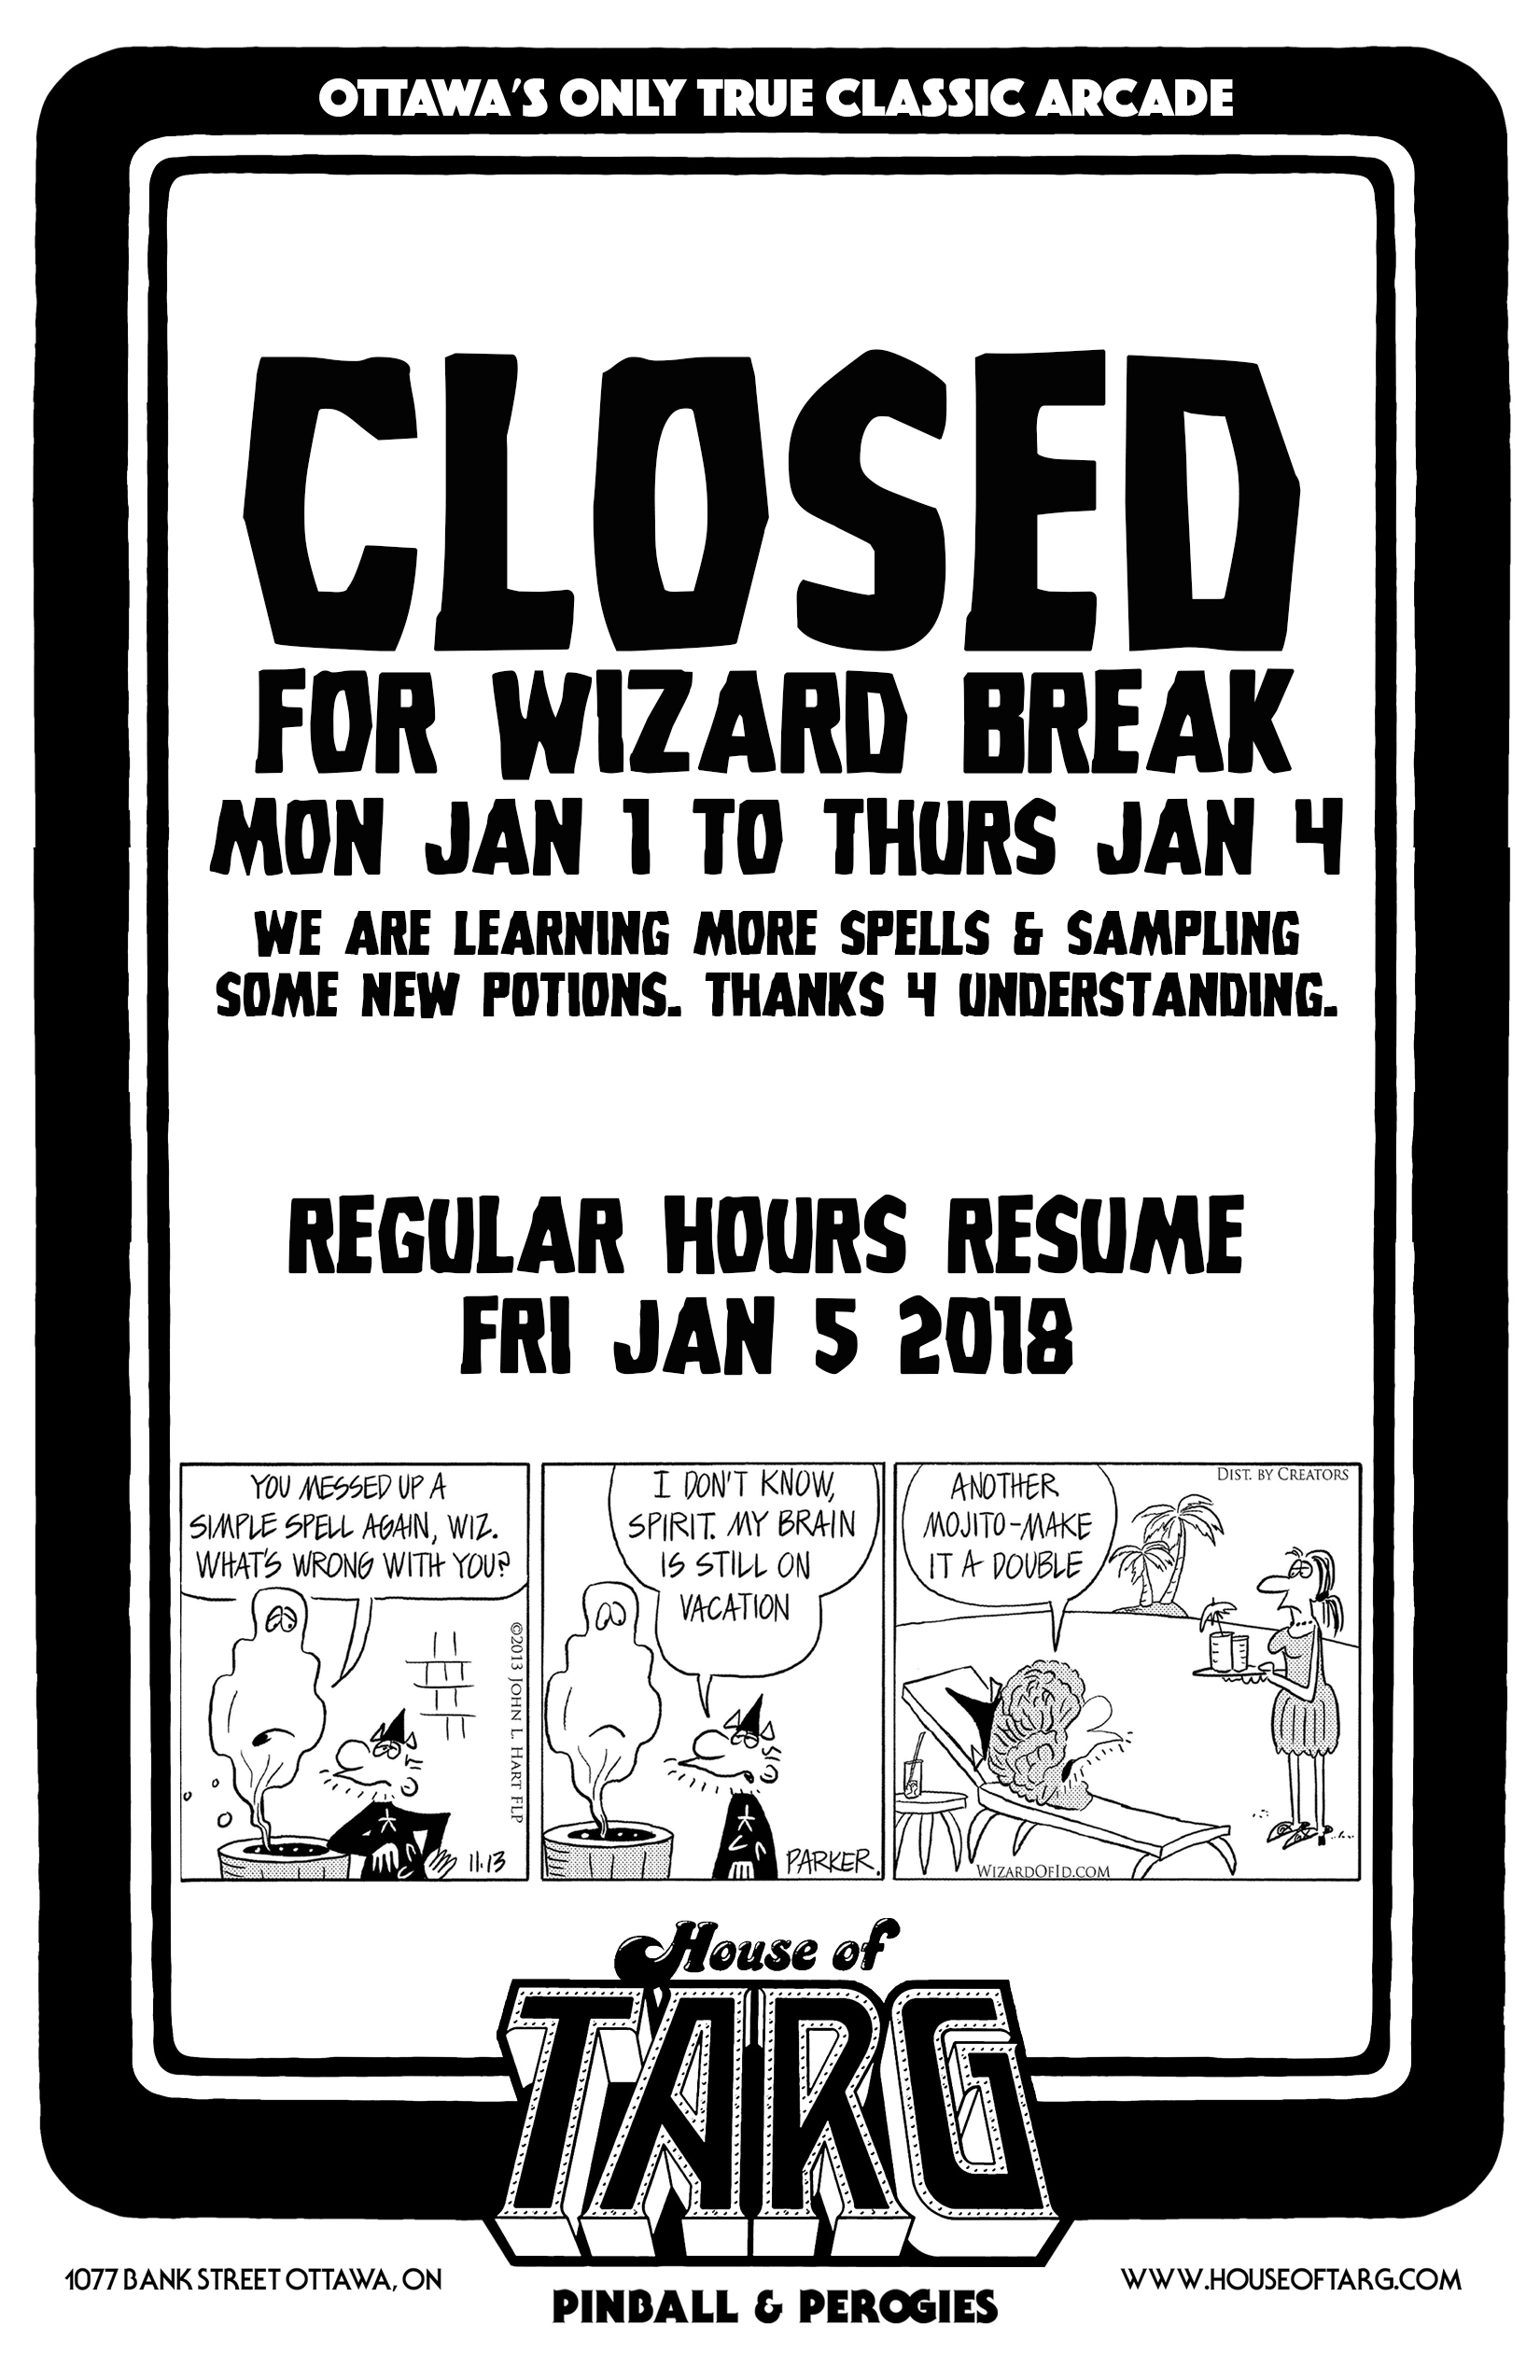 Closed Wizard Break 2018.jpg